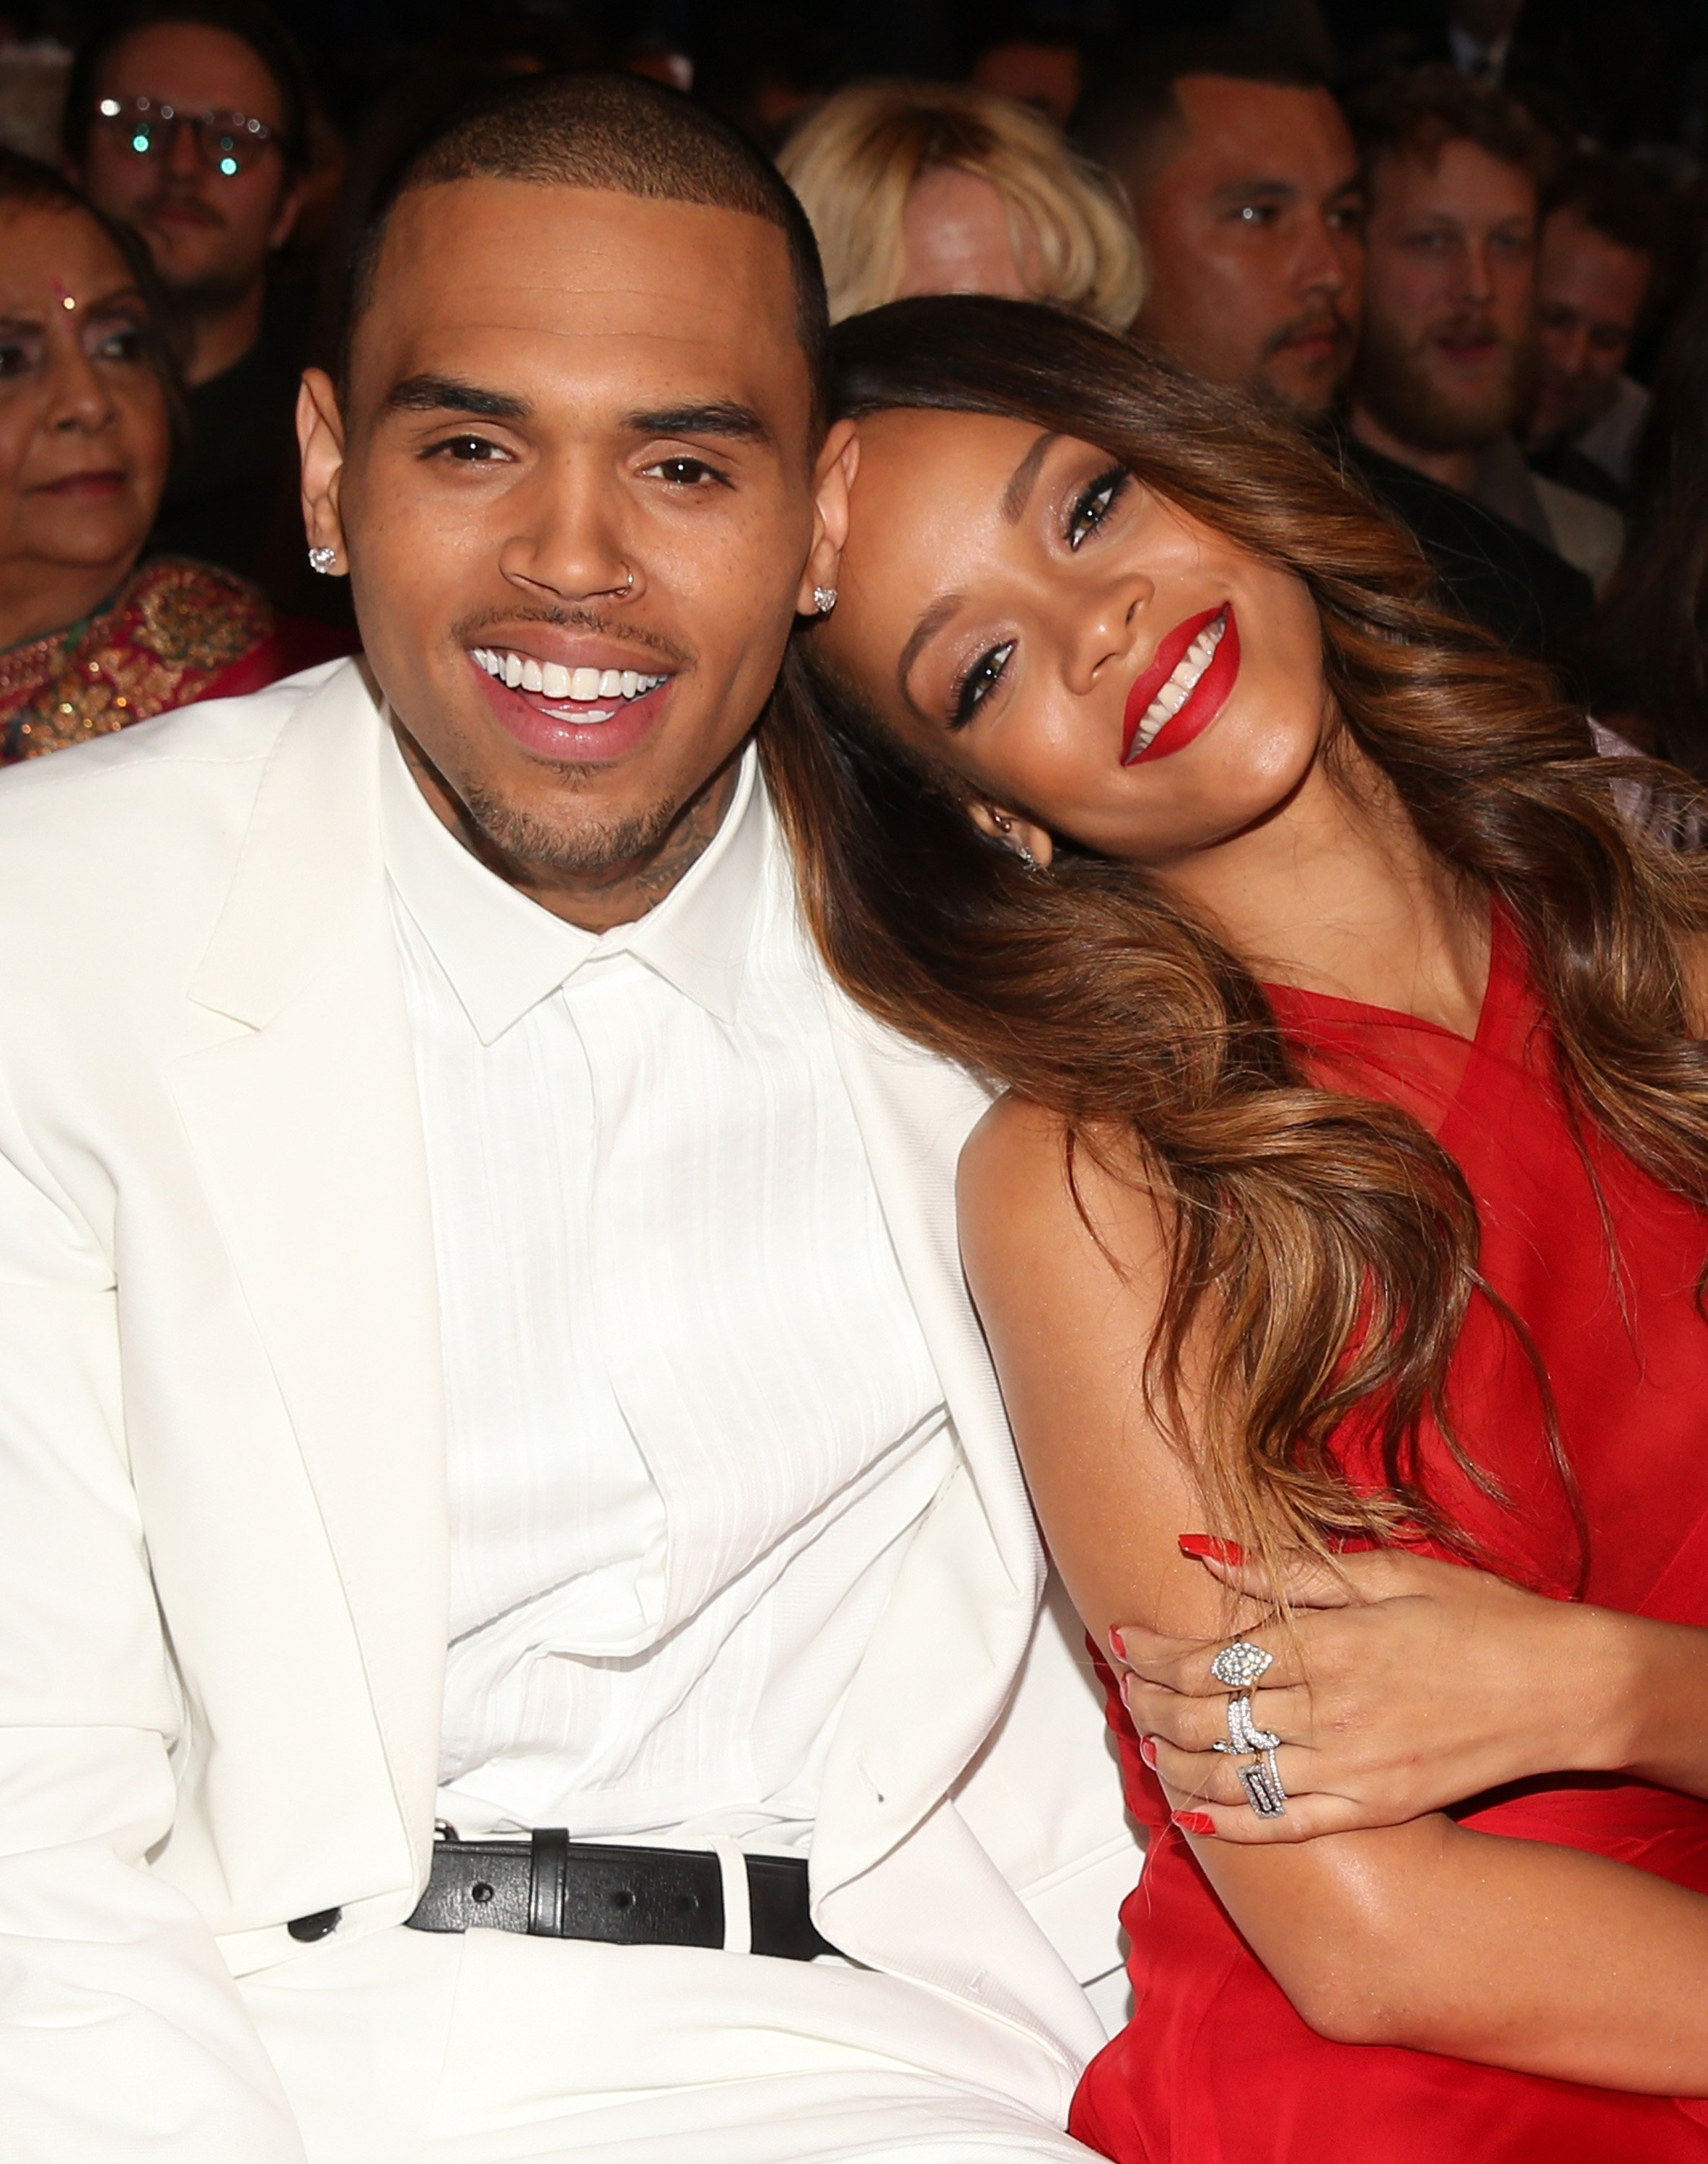 Chris Brown and Rihanna attend the 55th Annual GRAMMY Awards at STAPLES Center on February 10, 2013 | Photo: GettyImages